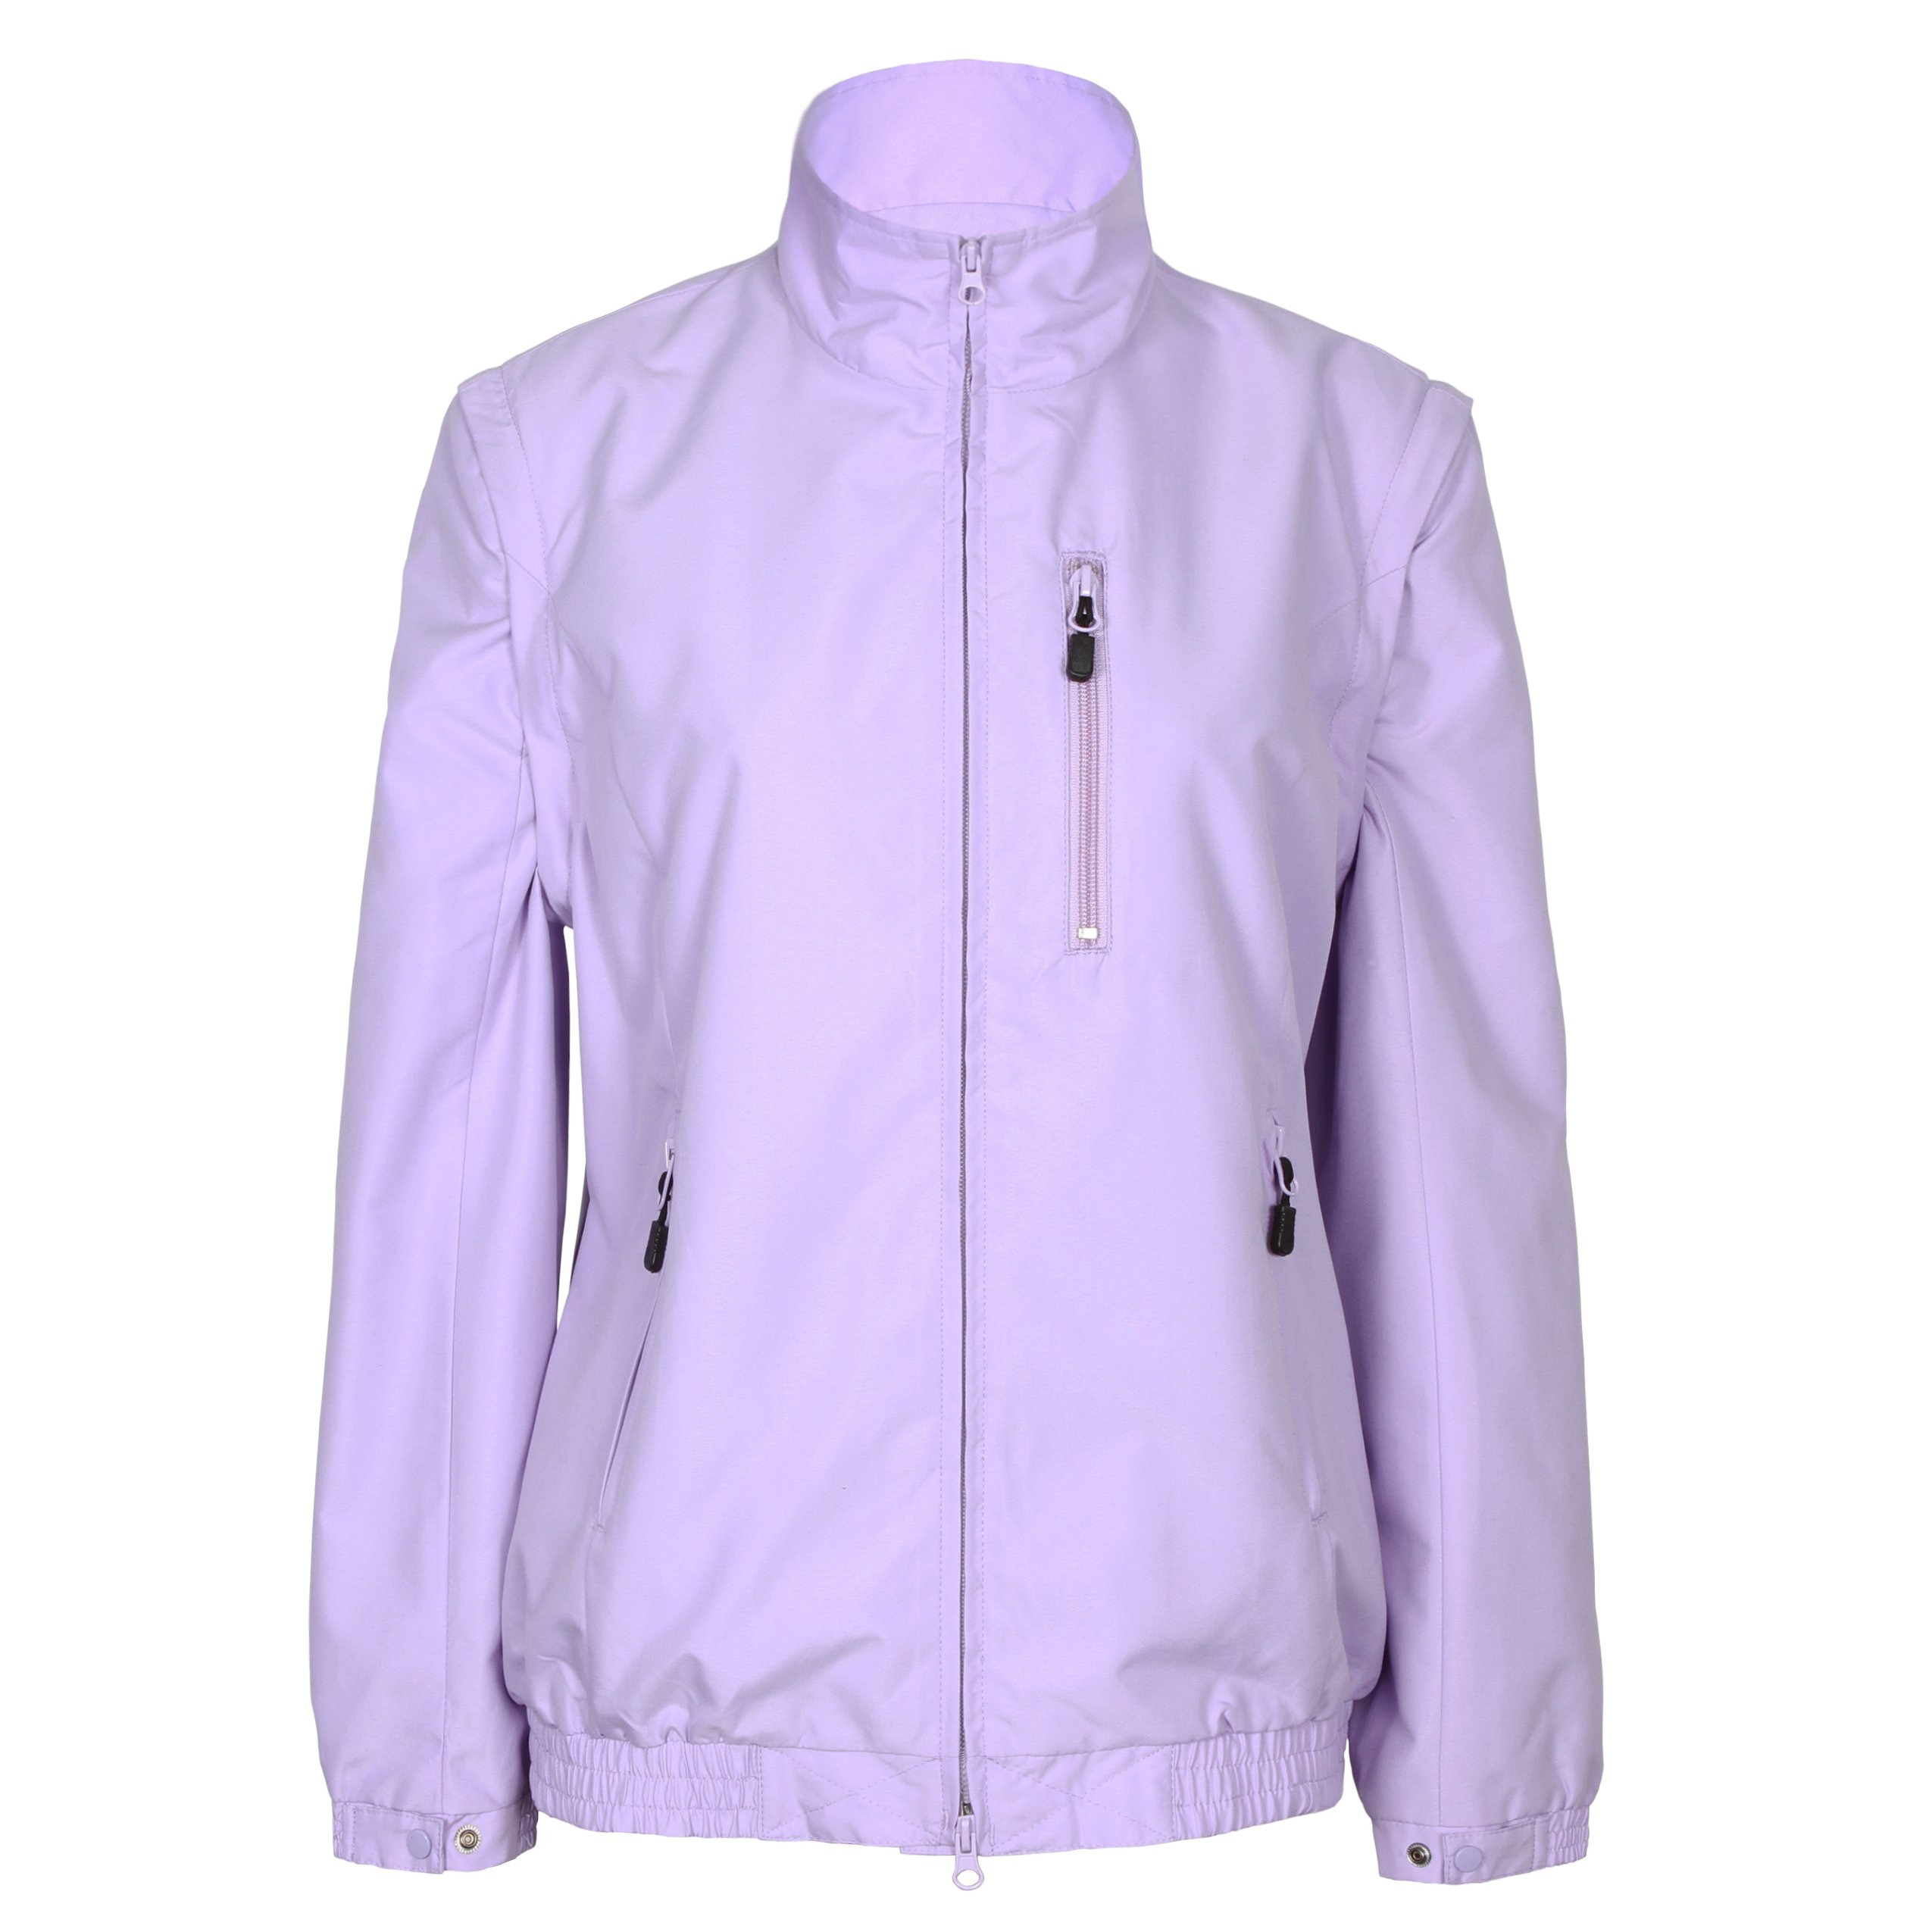 Tres Bien Golf Women's 2 in 1 Convertible Jacket / Vest (Medium, Lilac) by Tres Bien Golf (Image #1)